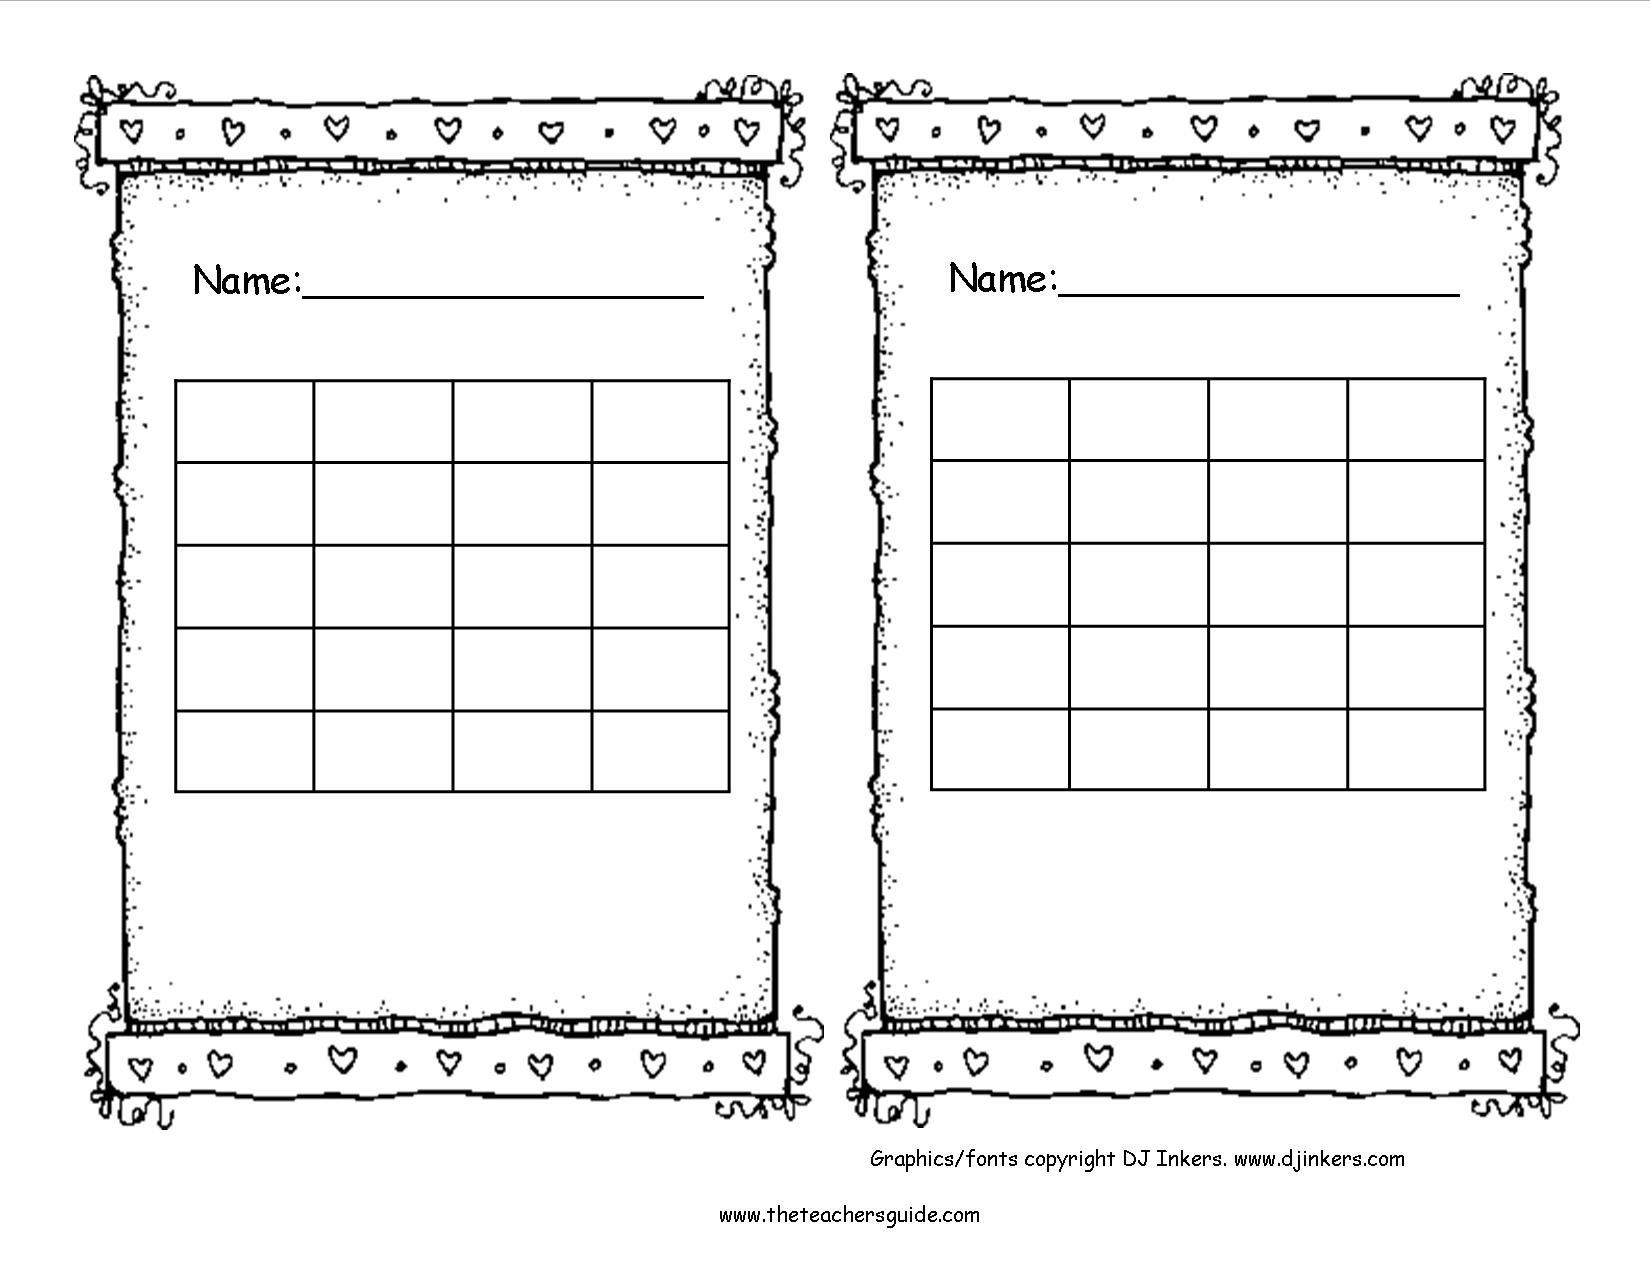 Free Printable Reward And Incentive Charts - Free Printable Behavior intended for Blank Behavior Charts For September